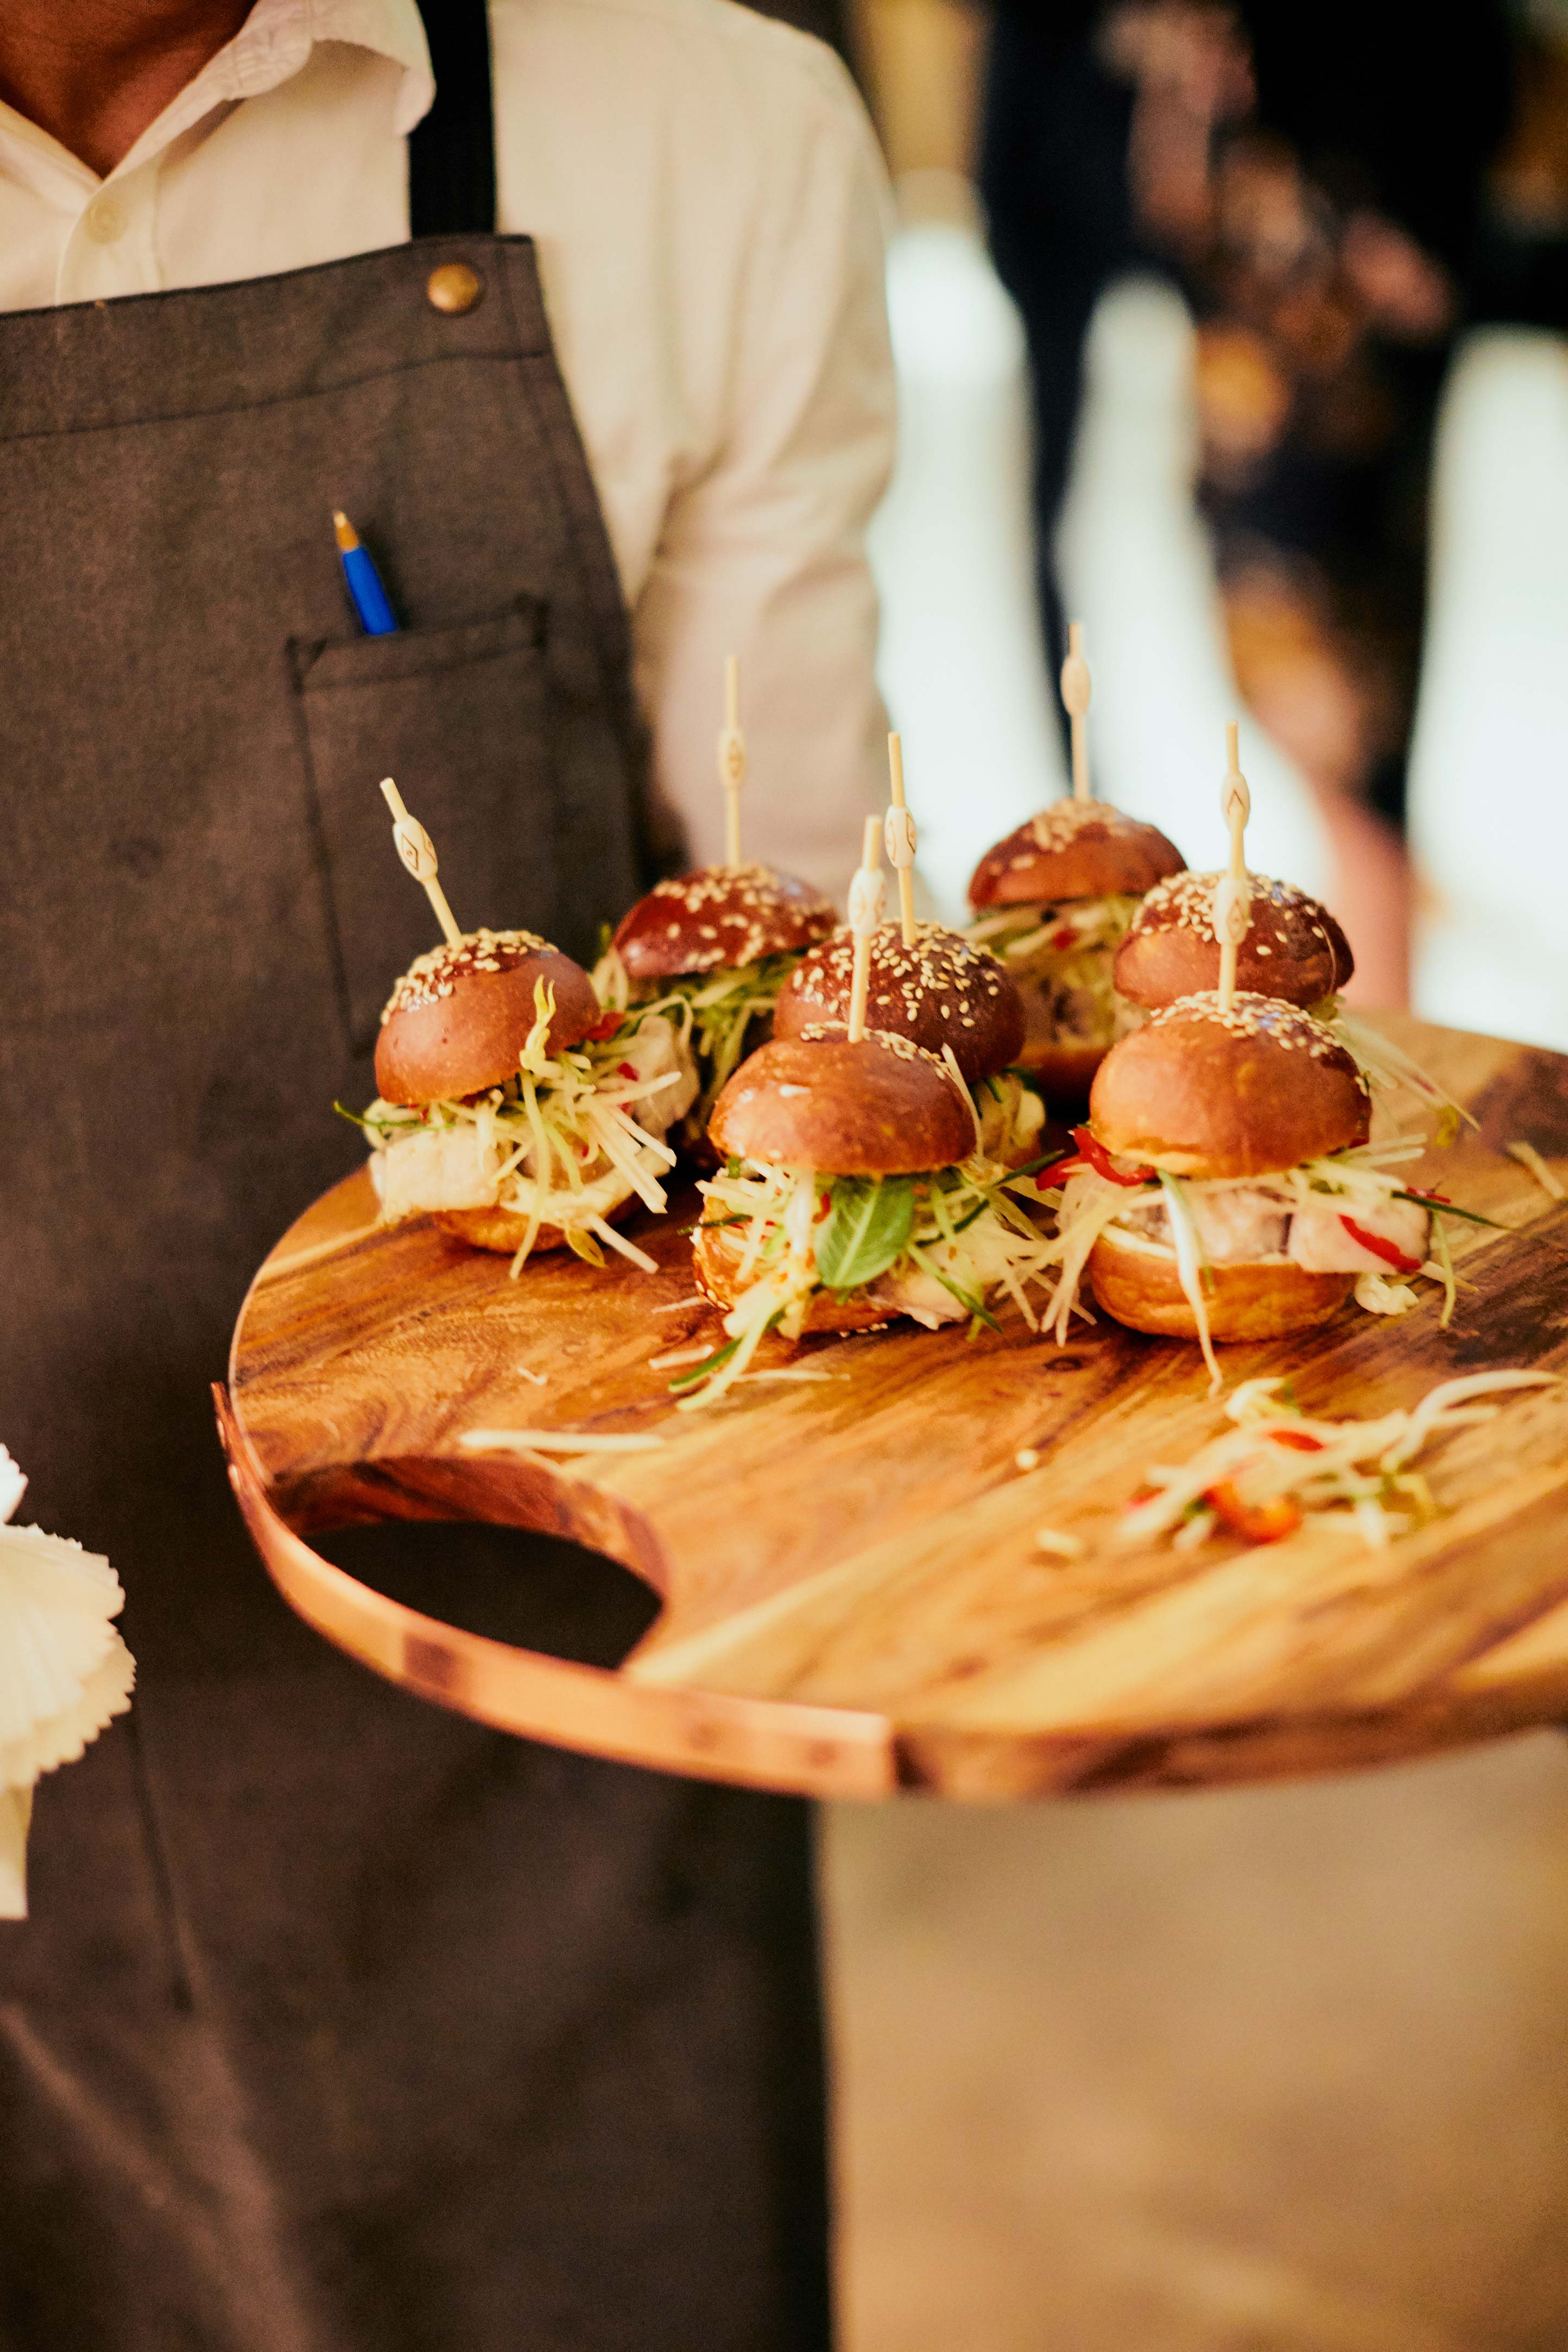 Melbourne-Wedding-Photographer-Kettle-Black-reception-food